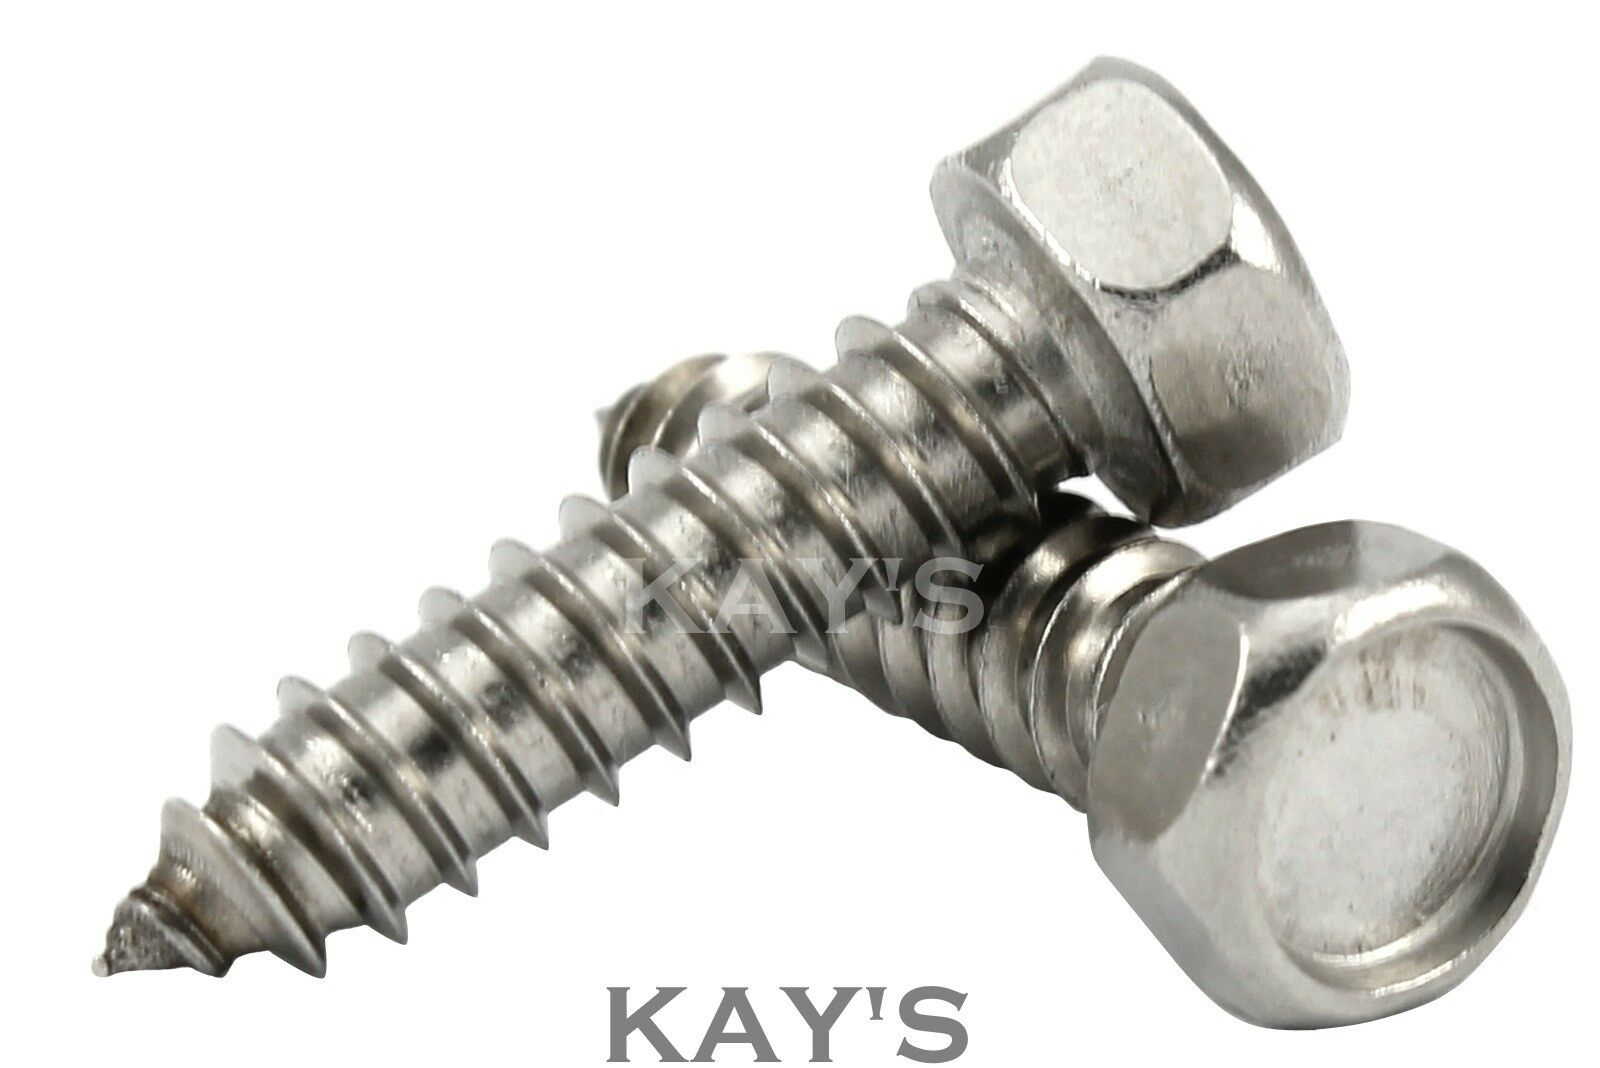 HEXAGON HEAD SELF TAPPING SCREWS, A2 STAINLESS STEEL TAPPERS No.6,8,10,12,14